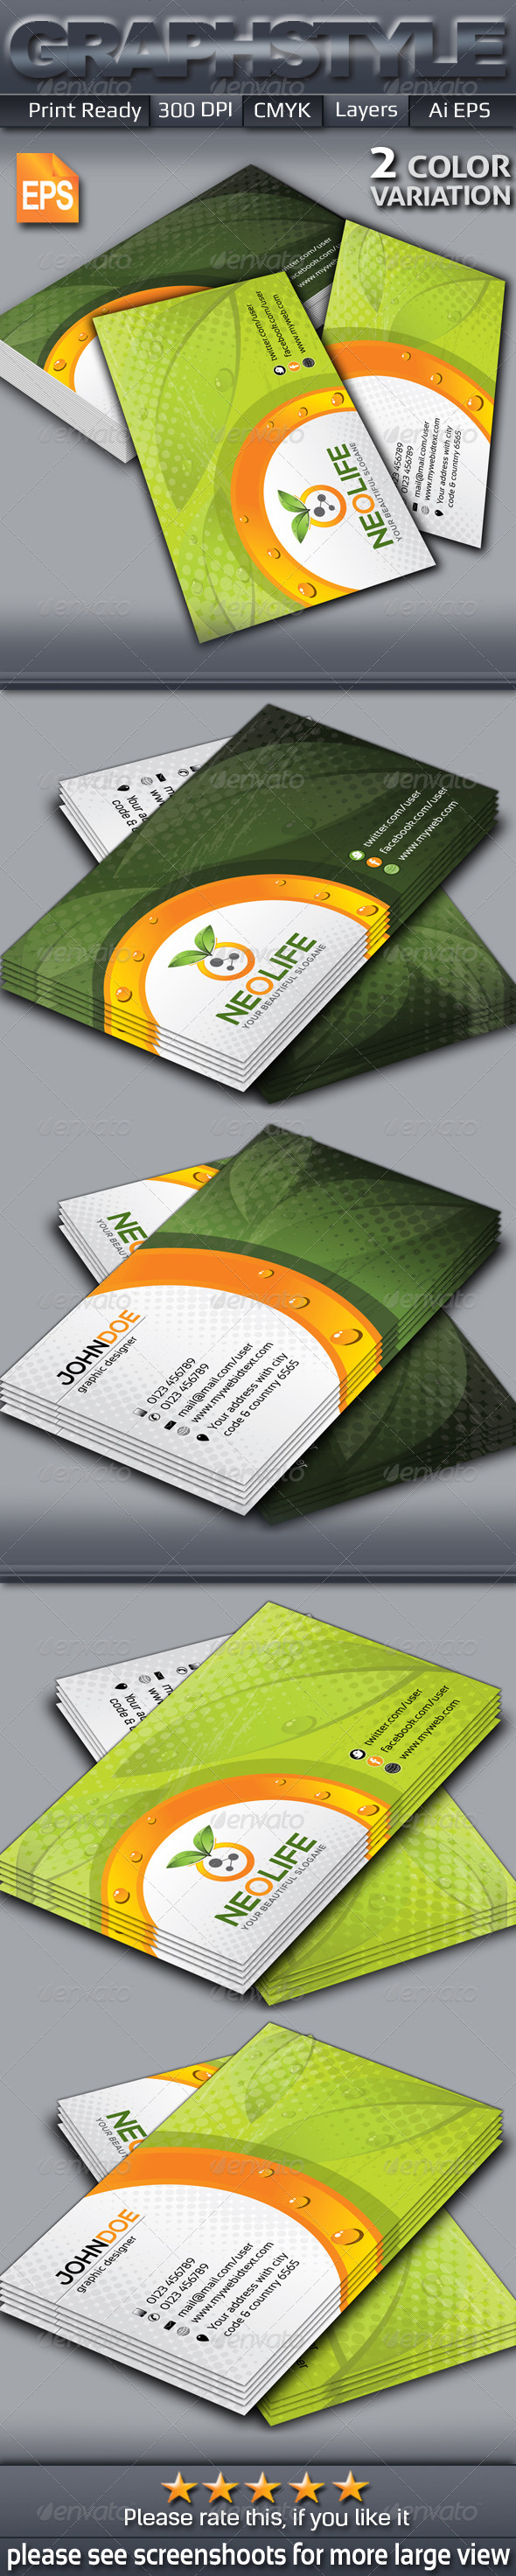 GraphicRiver Neolife Creative Business Card 6429427